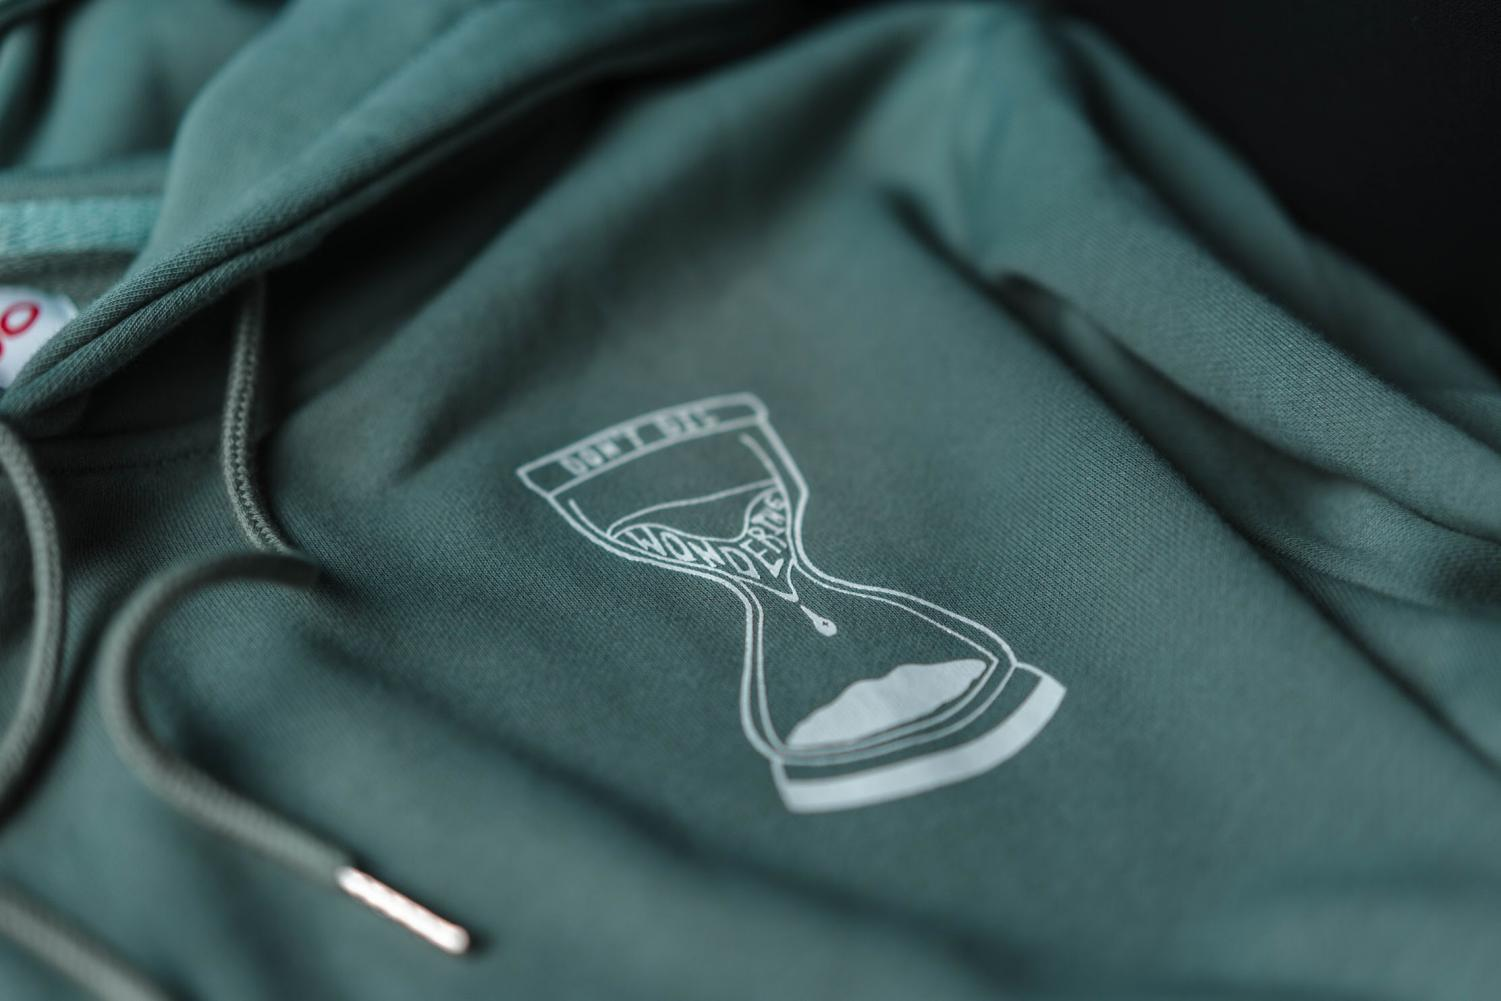 The Bonjo hoodie features an hourglass design with the brand's slogan,